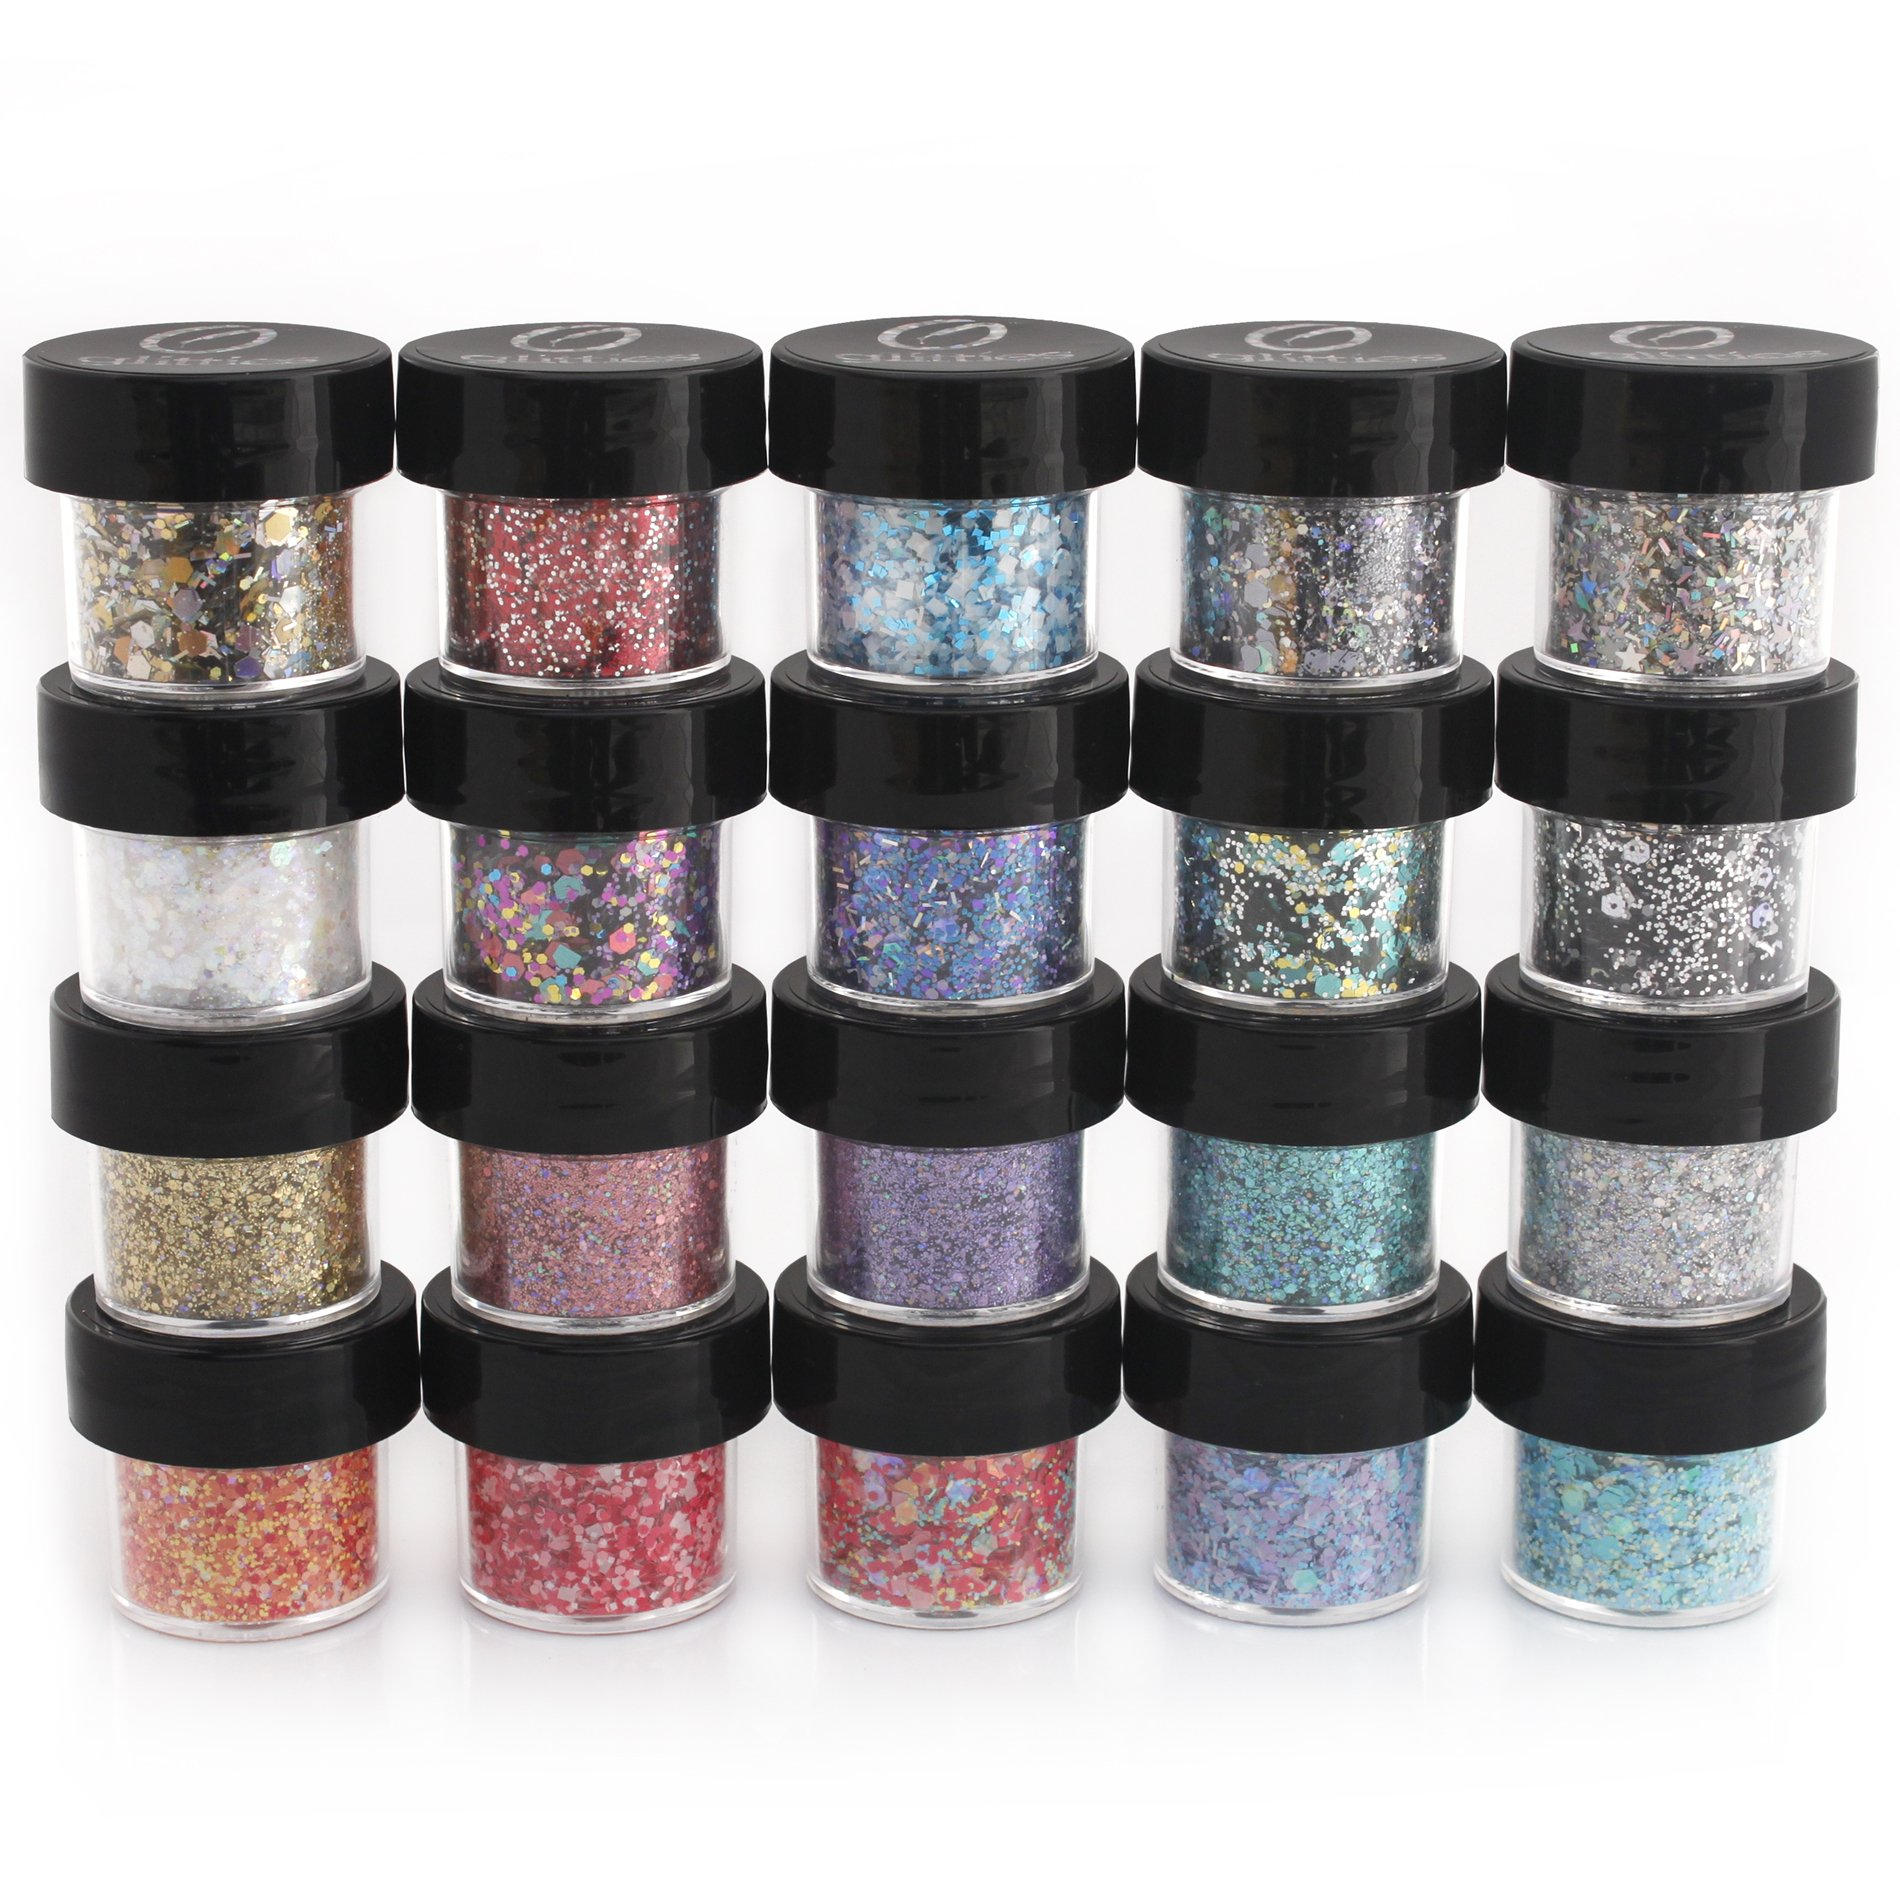 GLITTIES - (20 PK) - Custom Mixed Glitter - Great for Nail Art Polish, Gels, Art and Crafts, Paints & Acrylics Supplies - Includes Solvent Resistant, Powder, Hexagon, Holographic, Matte - (200 Grams) by Glitties